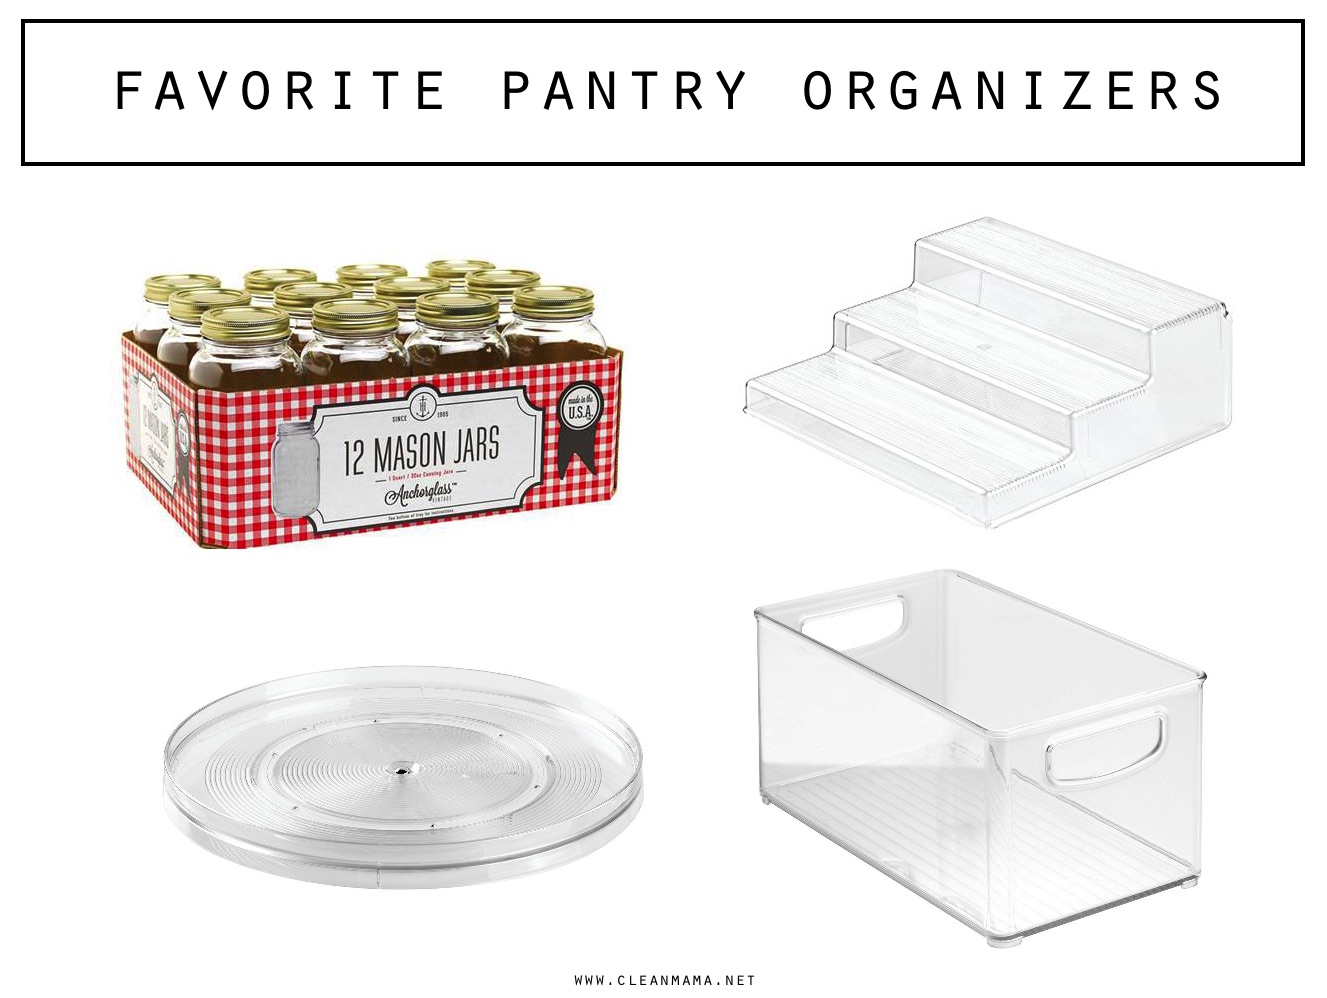 favorite-pantry-organizers-clean-mama